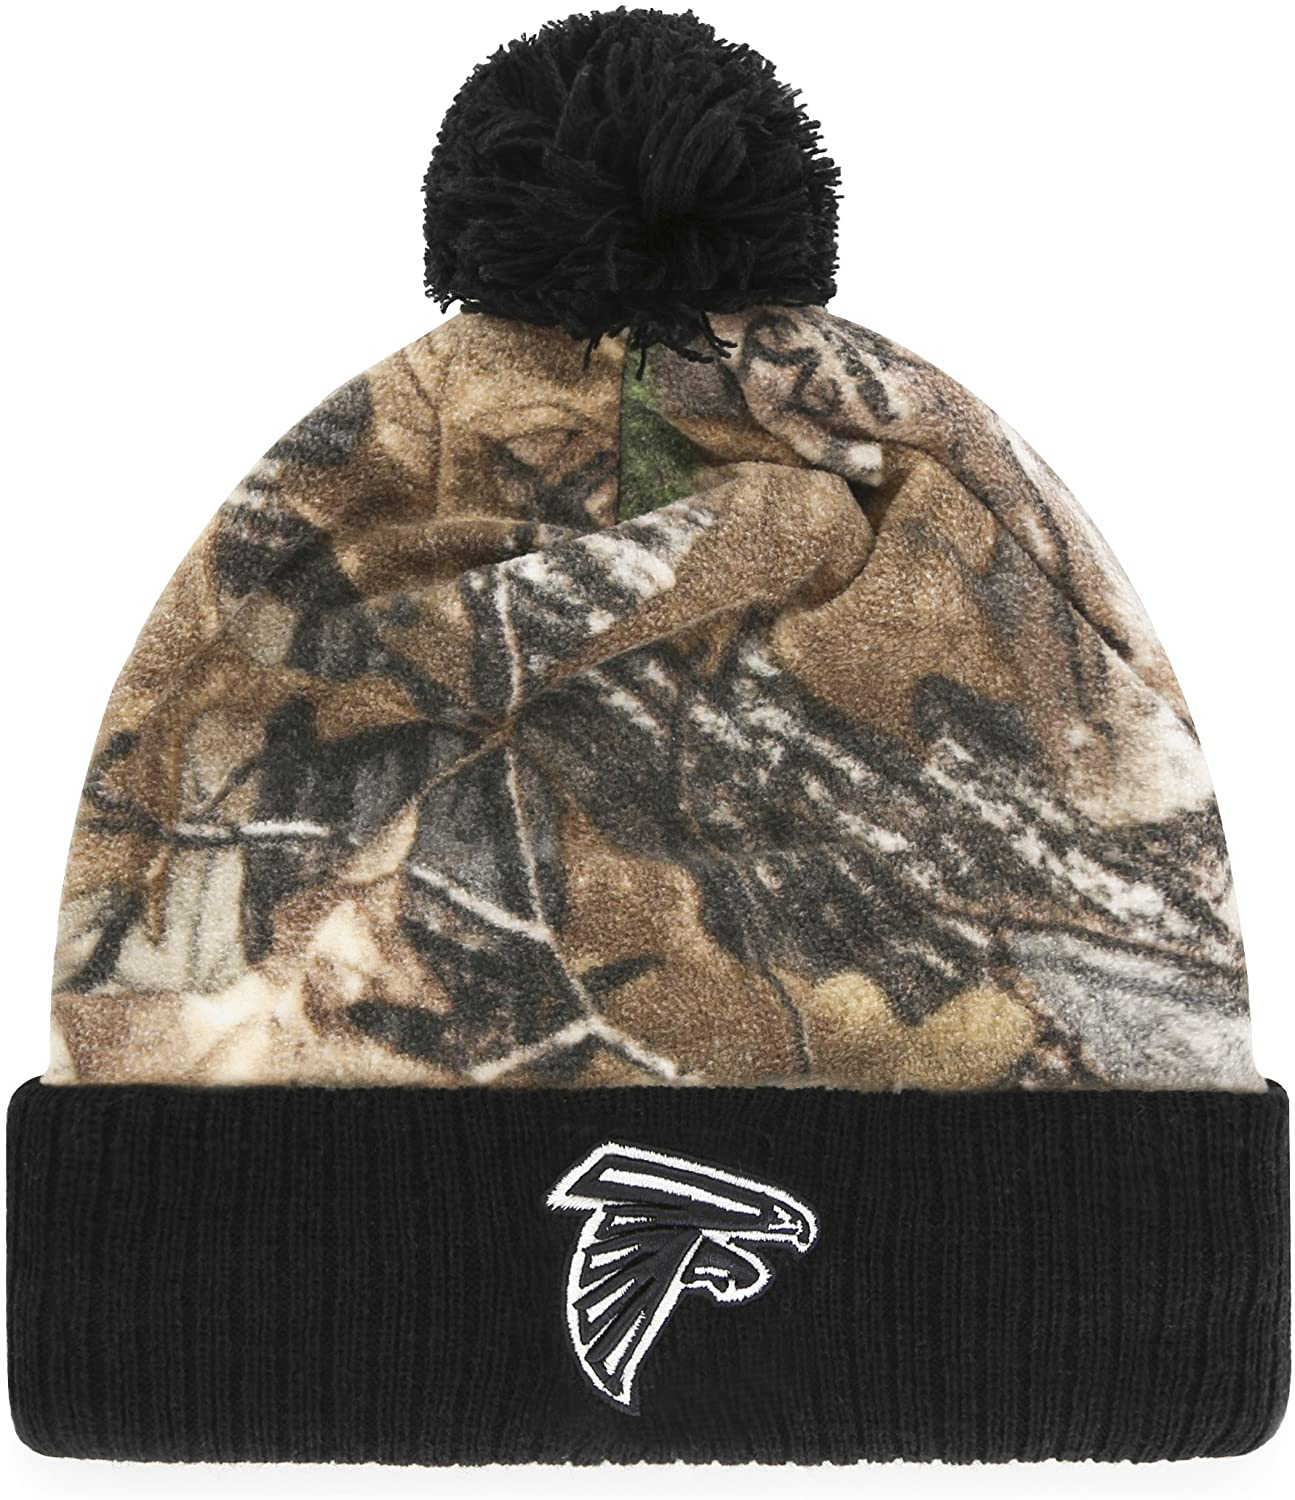 NFL Men's OTS Greyson Cuff Knit Cap with Pom